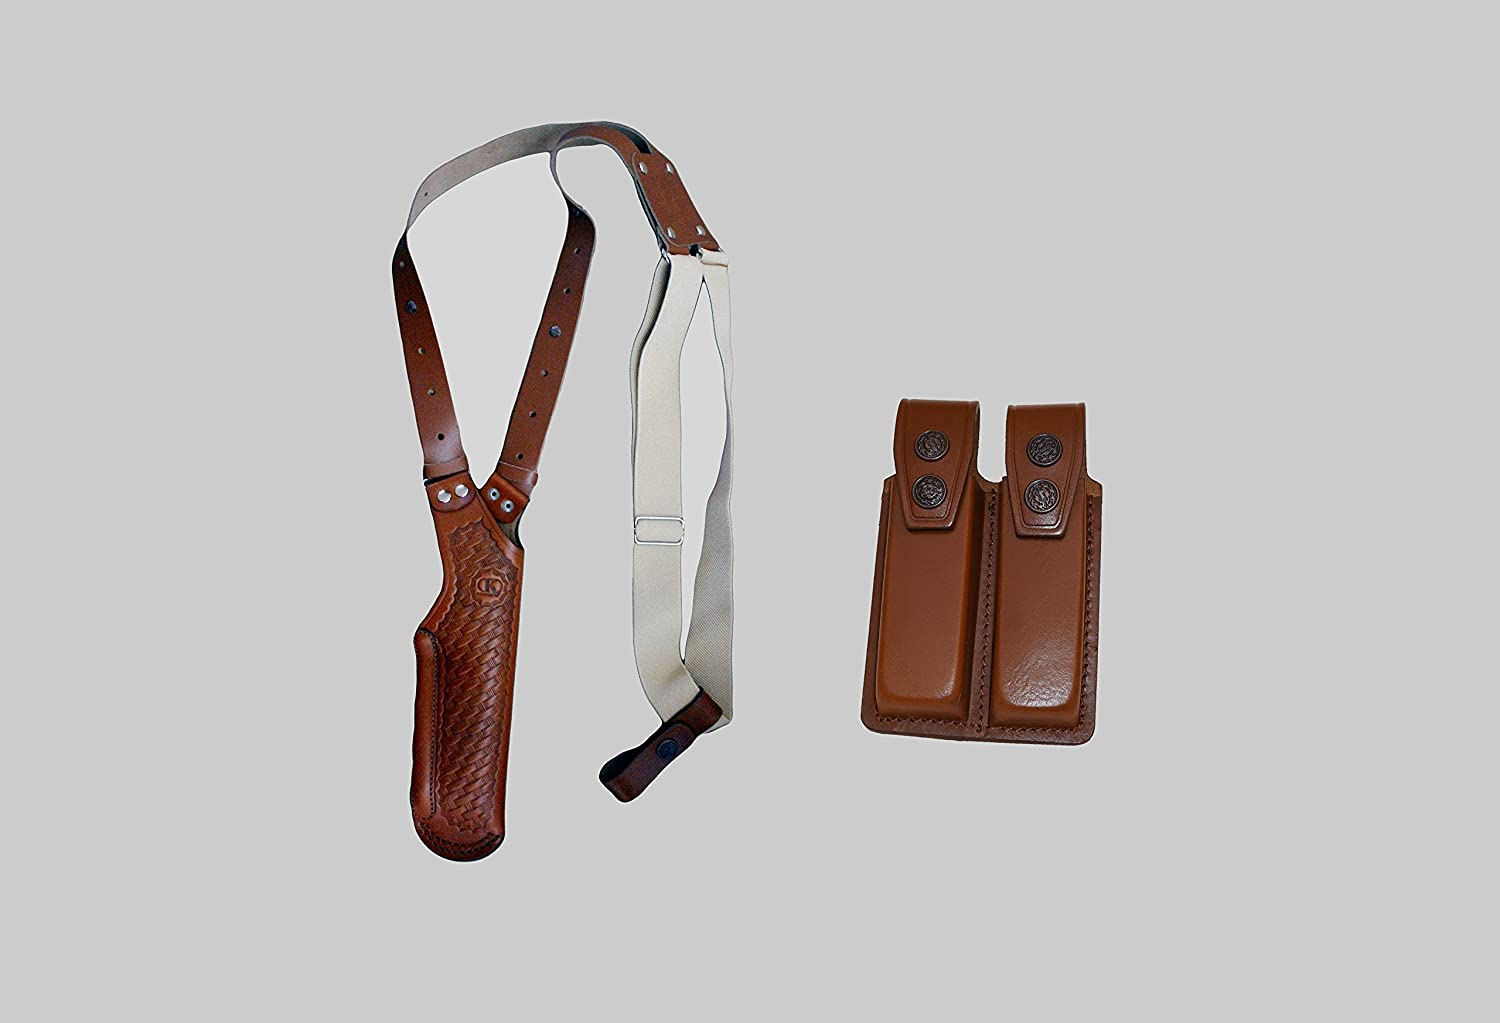 ALIS40006 Basketweave Vertical Gun Shoulder Holster & Double Magazine Pouch for Beretta Taurus CZ 75 Browning HP Sig Sauer P226 Handmade!